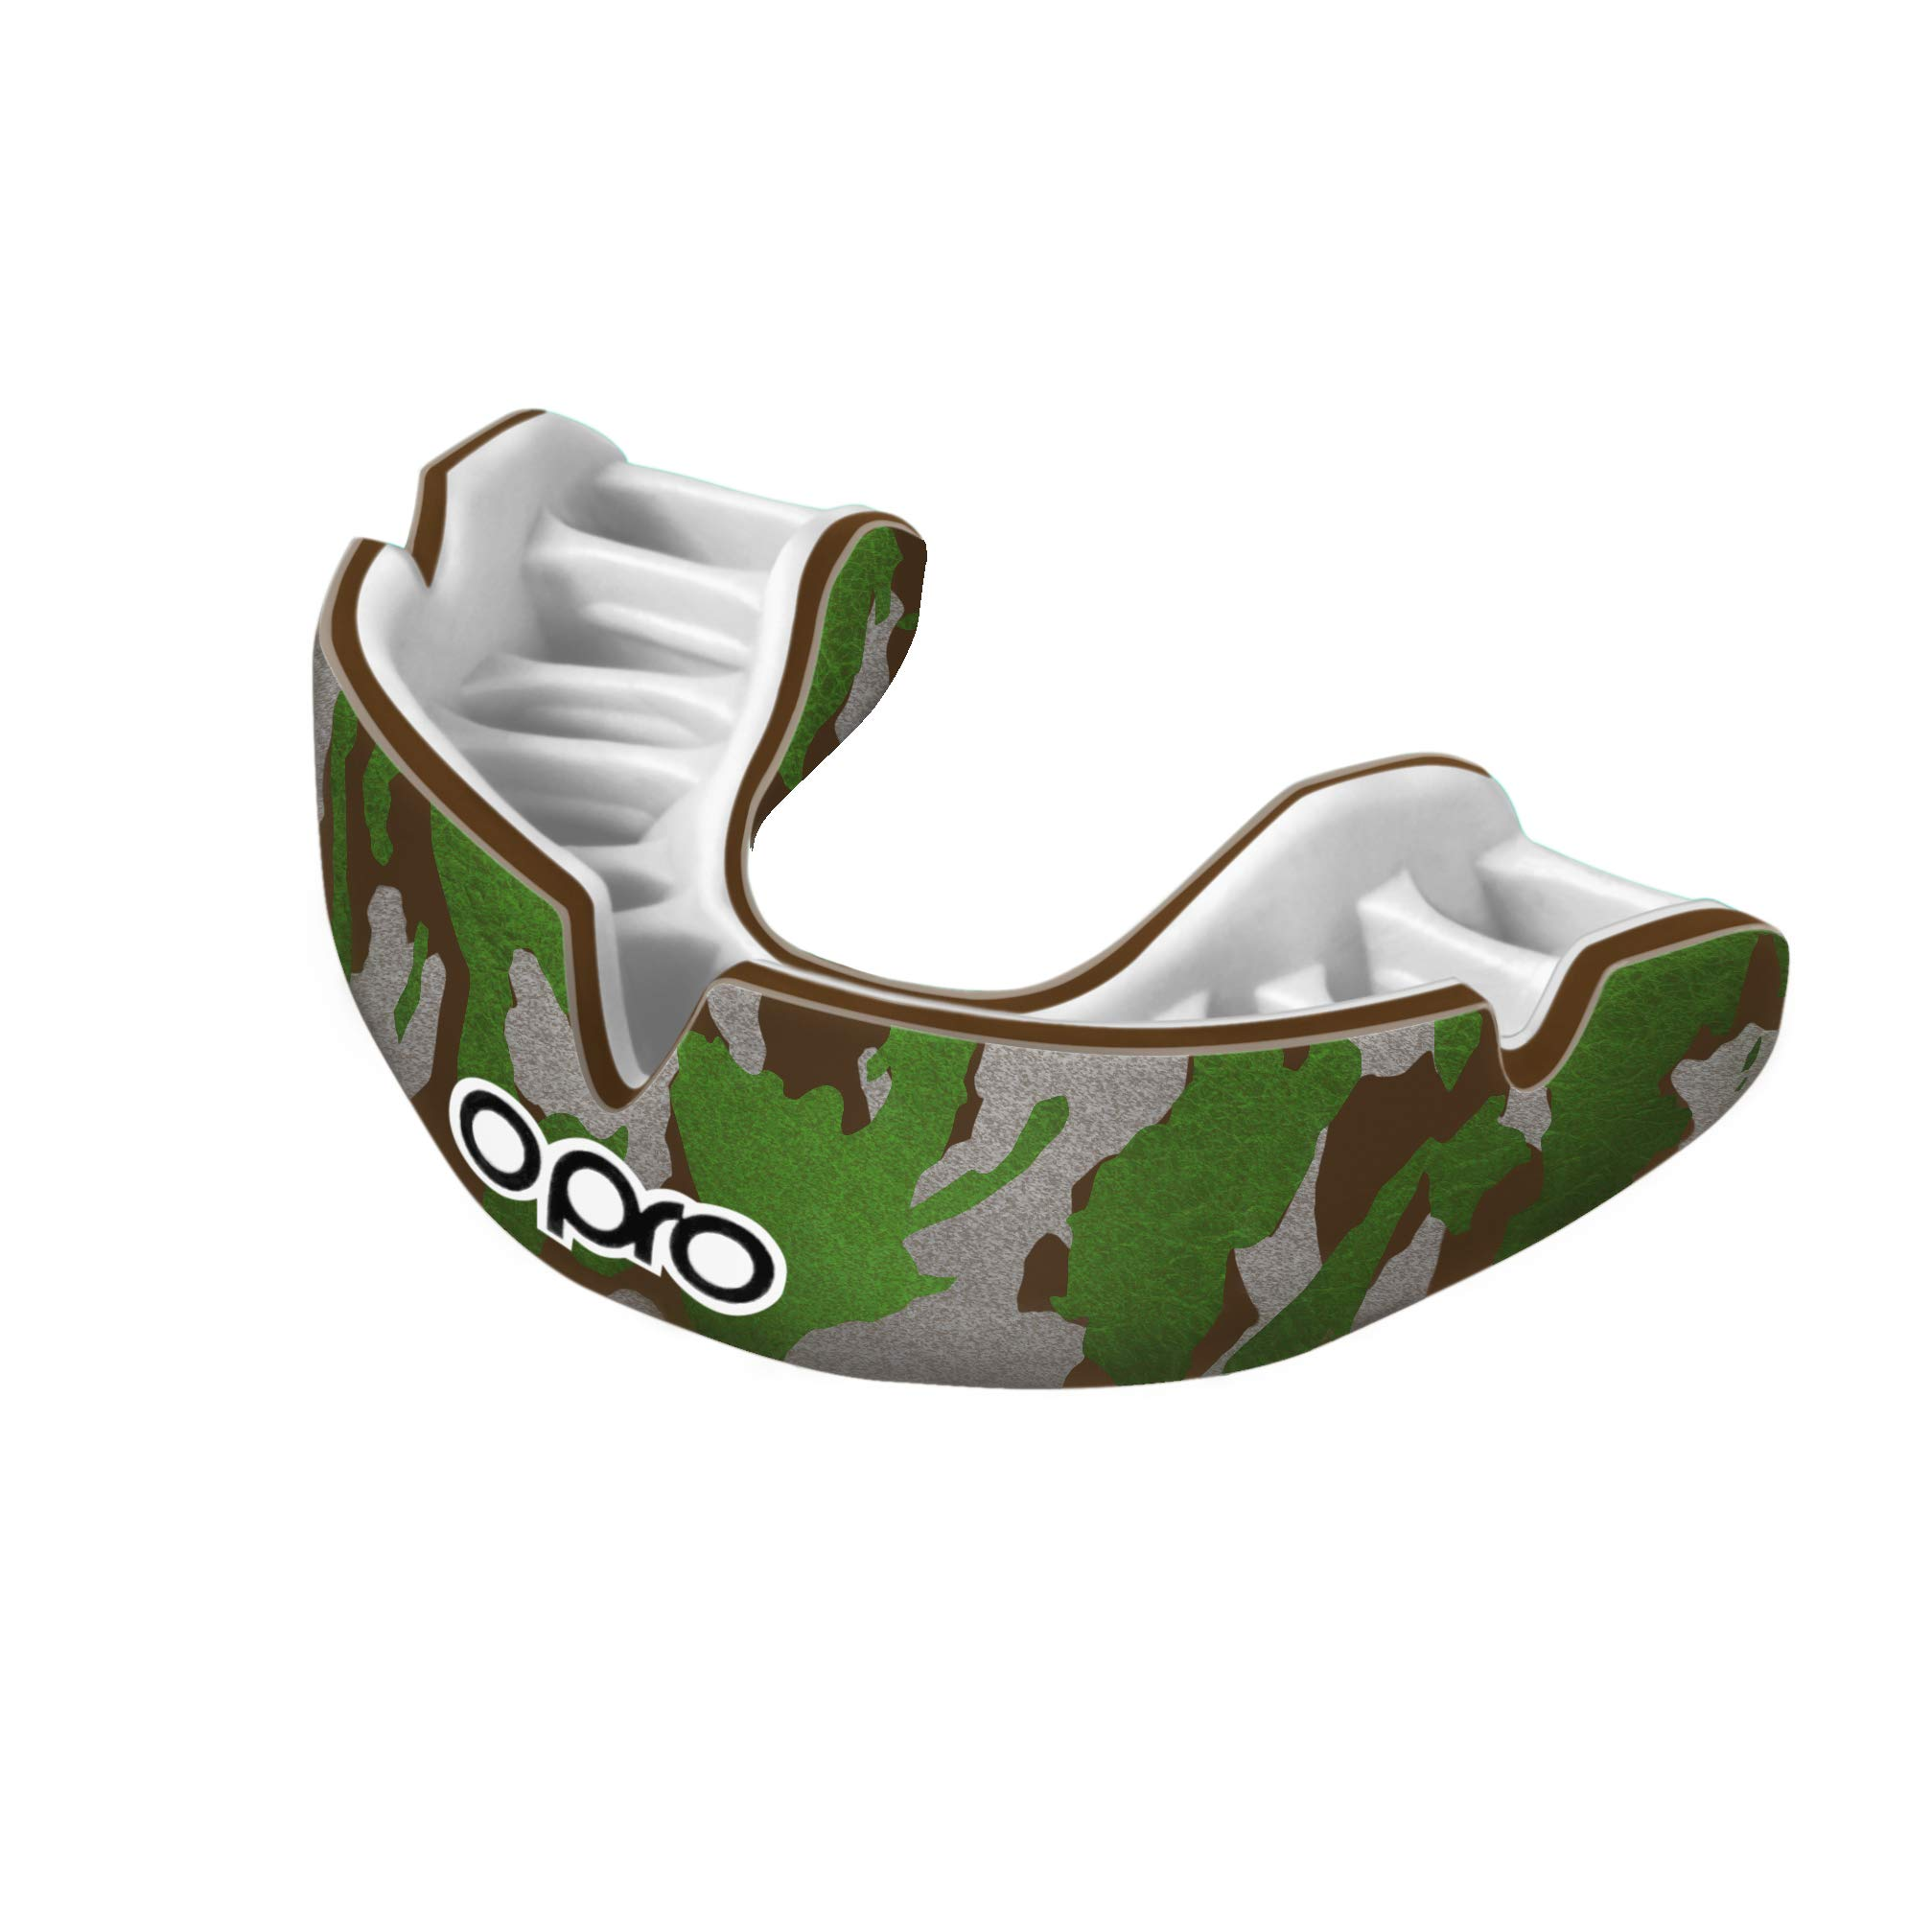 OPRO Power-Fit Mouthguard | Gum Shield for Rugby, Hockey, Wrestling, and Other Combat and Contact Sports (Adult and Junior Sizes) - 18 Month Dental Warranty (Camo - Brown/Green/Silver, Junior)